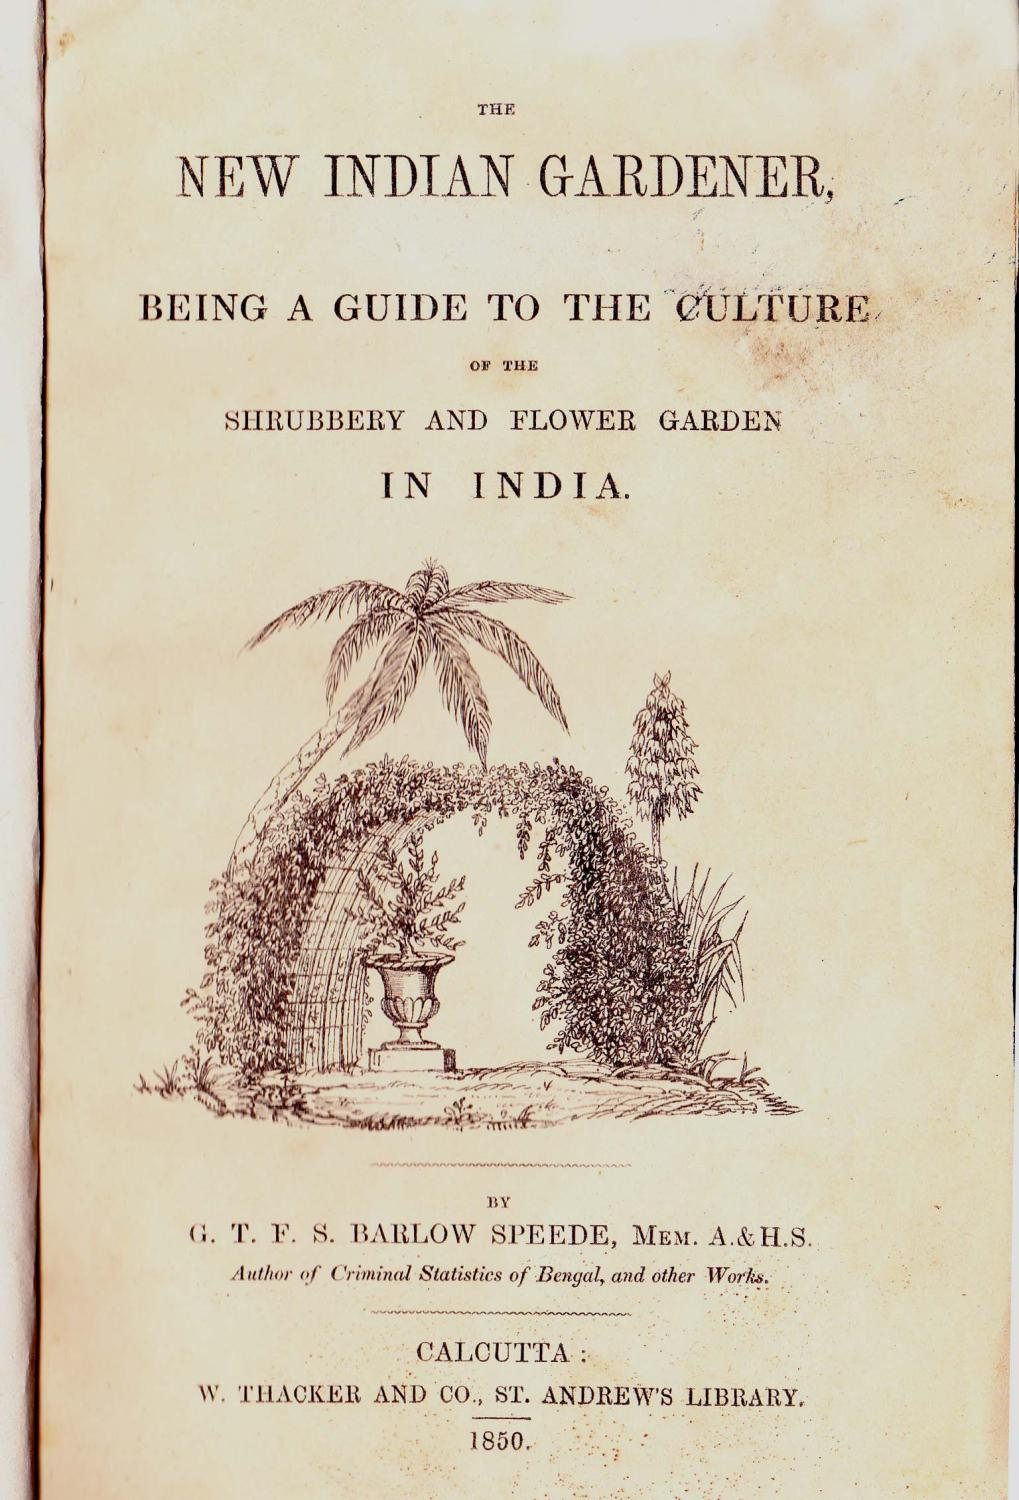 The New Indian Gardener, being a guide to